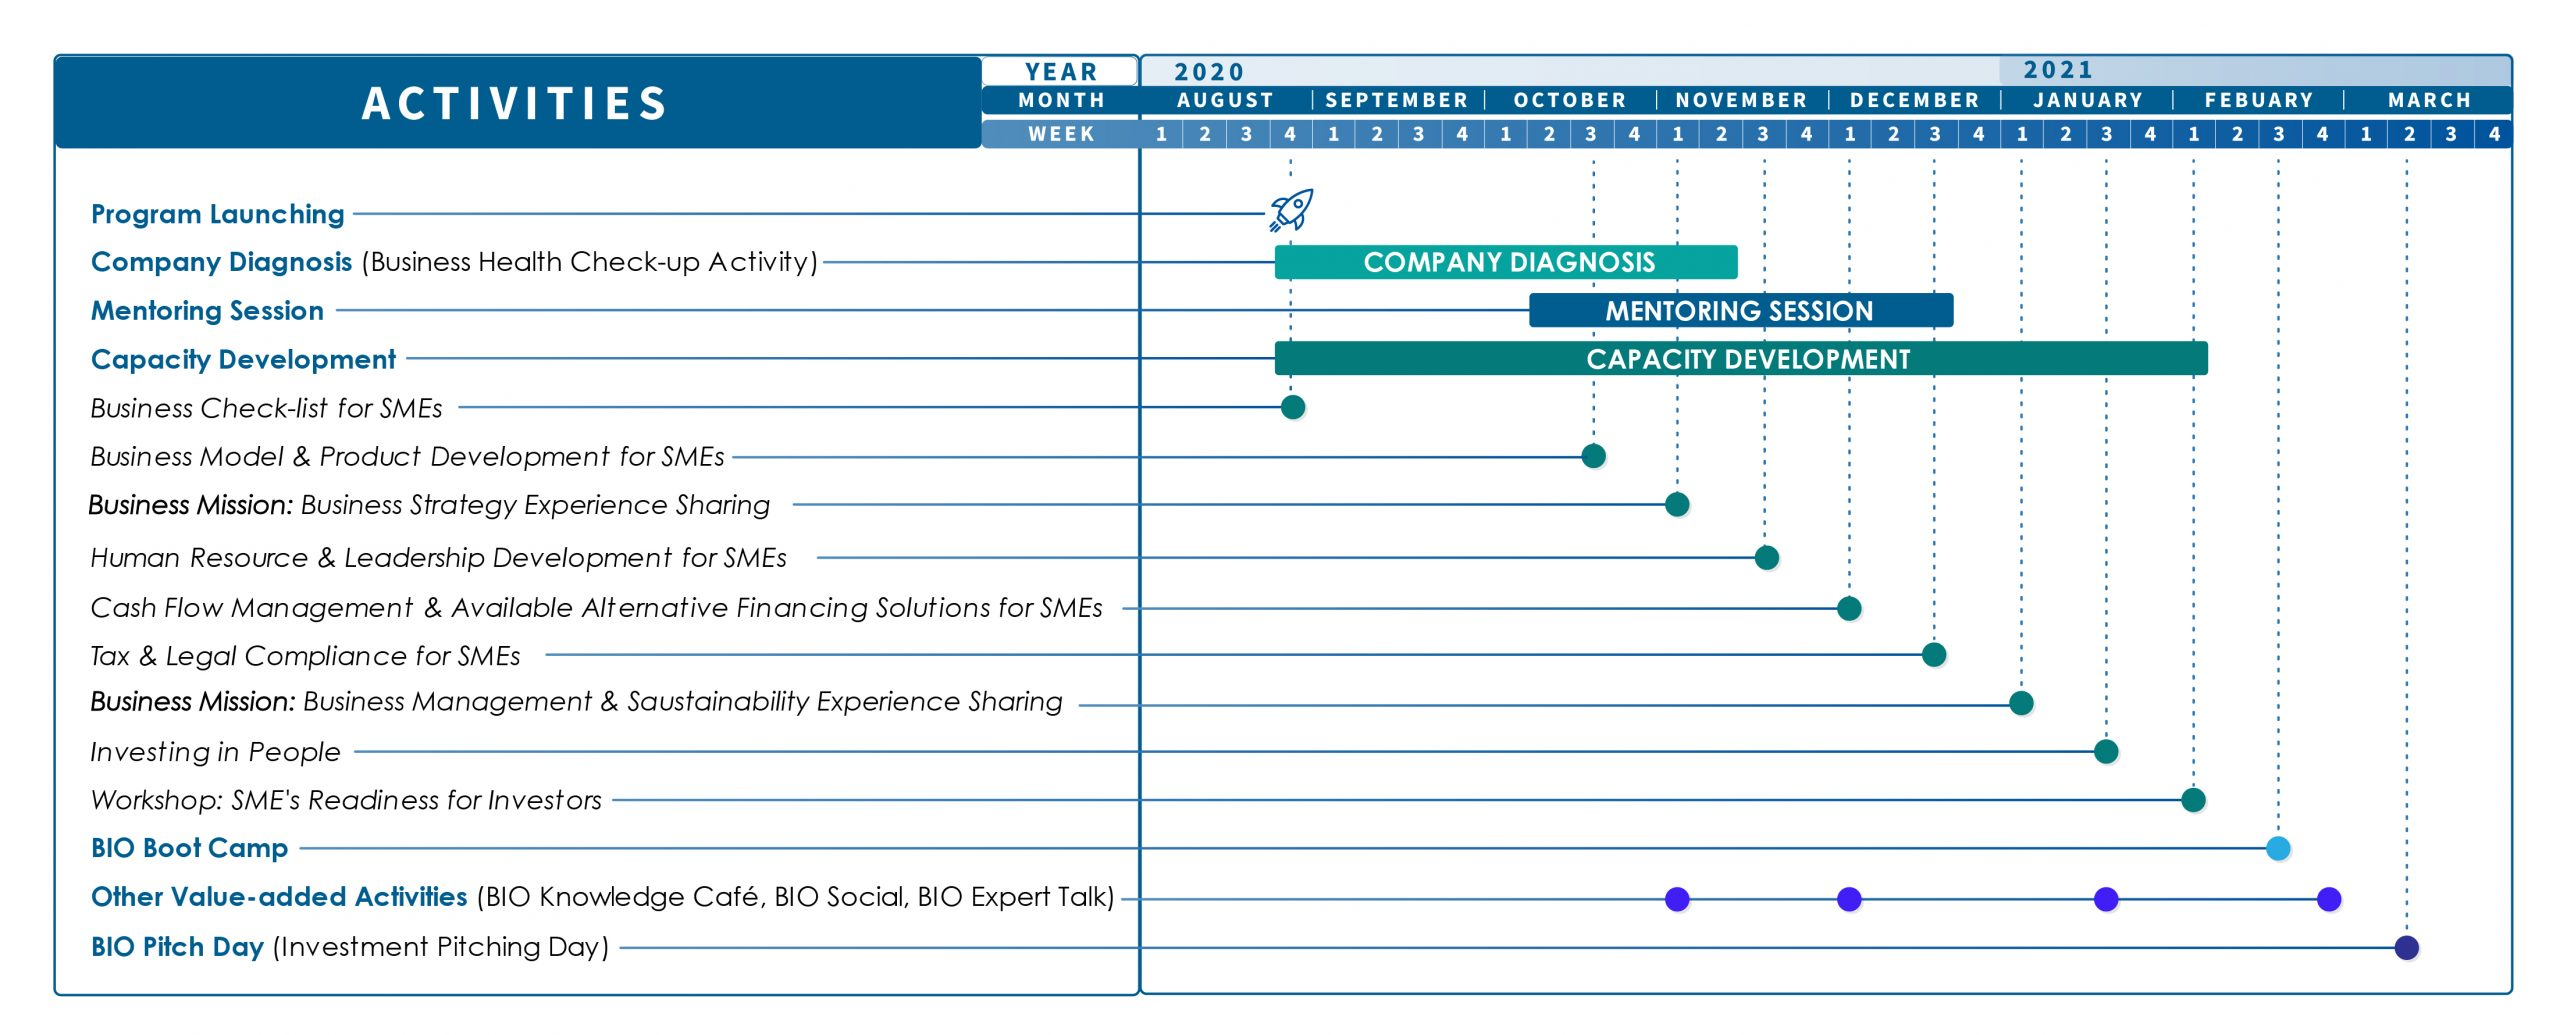 Cambodia investment law 2021 calendar trade related investment measures summary of the odyssey